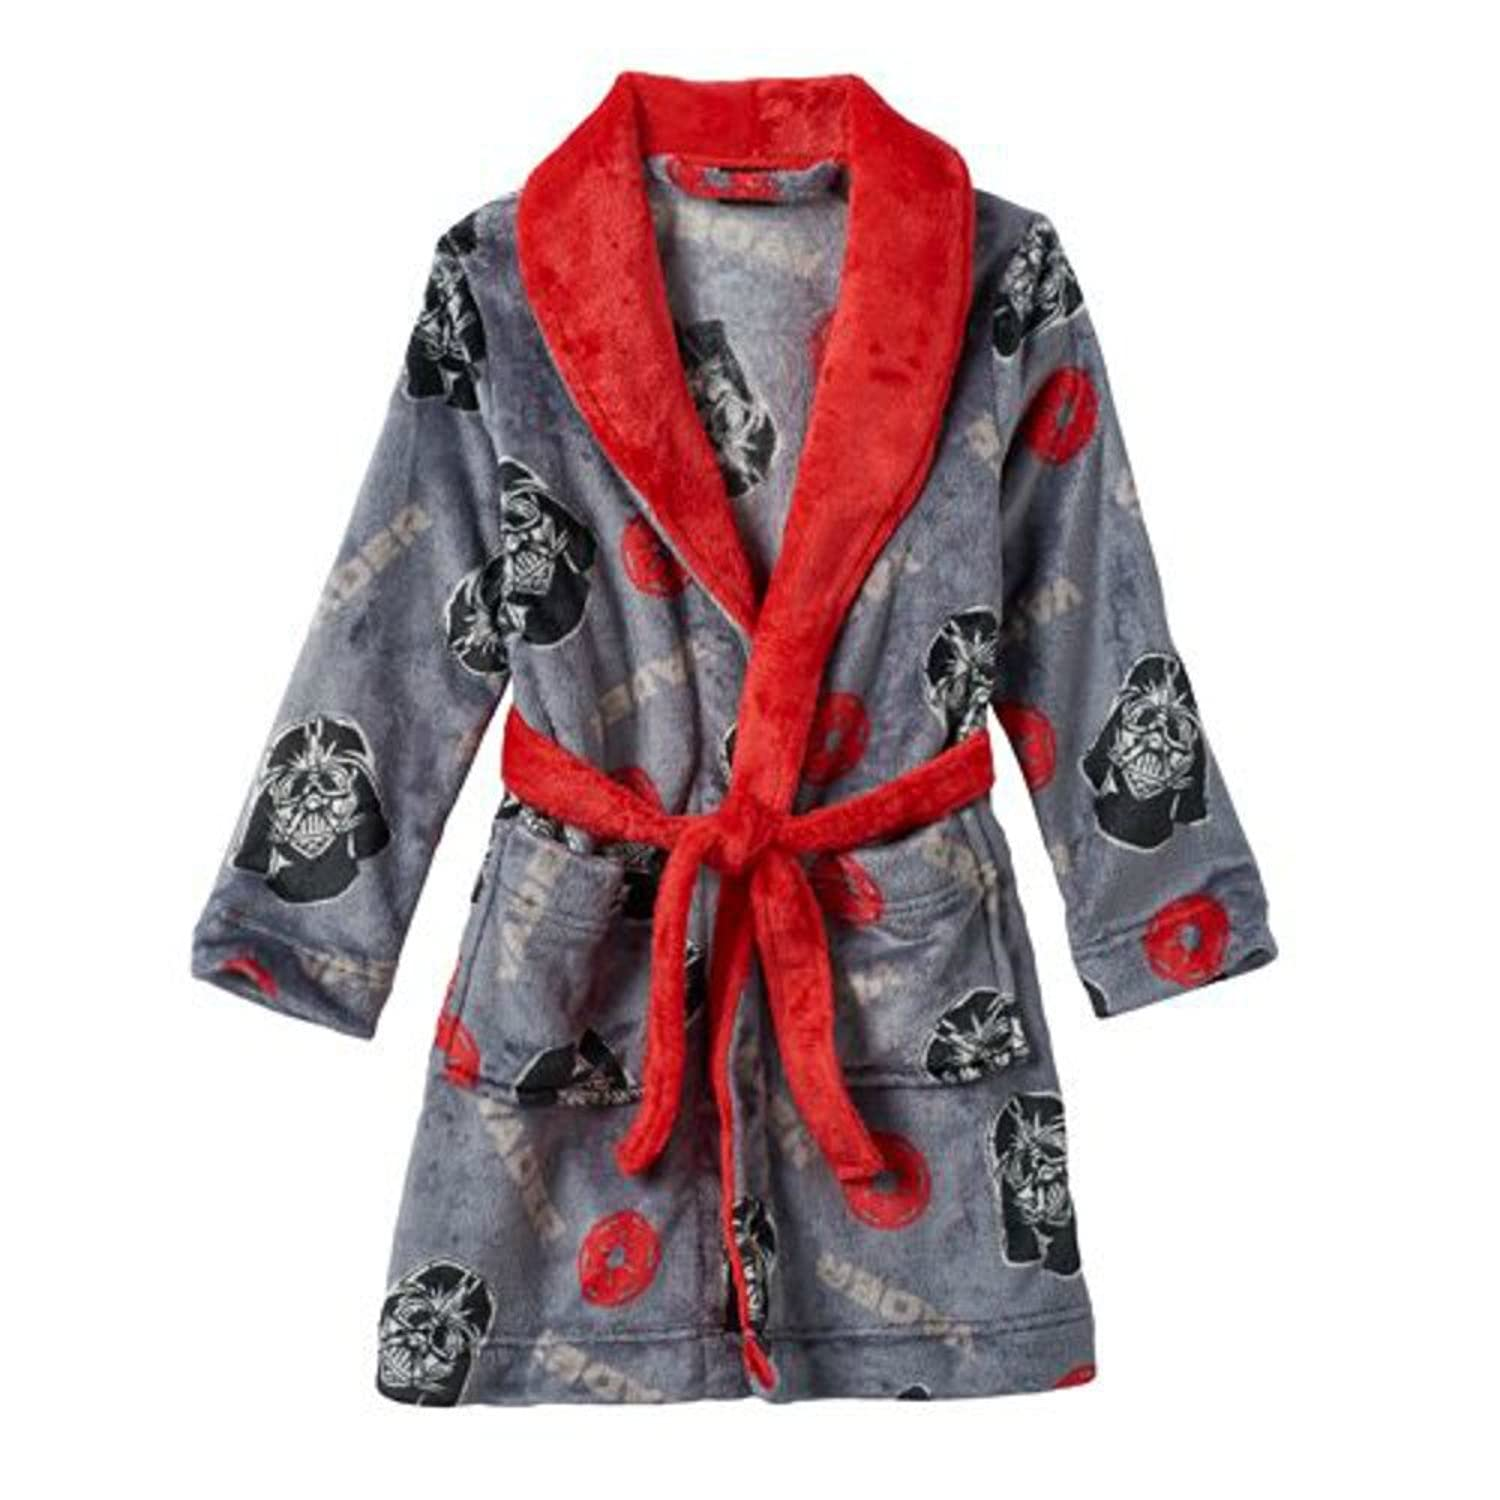 Star Darth Vader Toddler Bathrobe Image 1